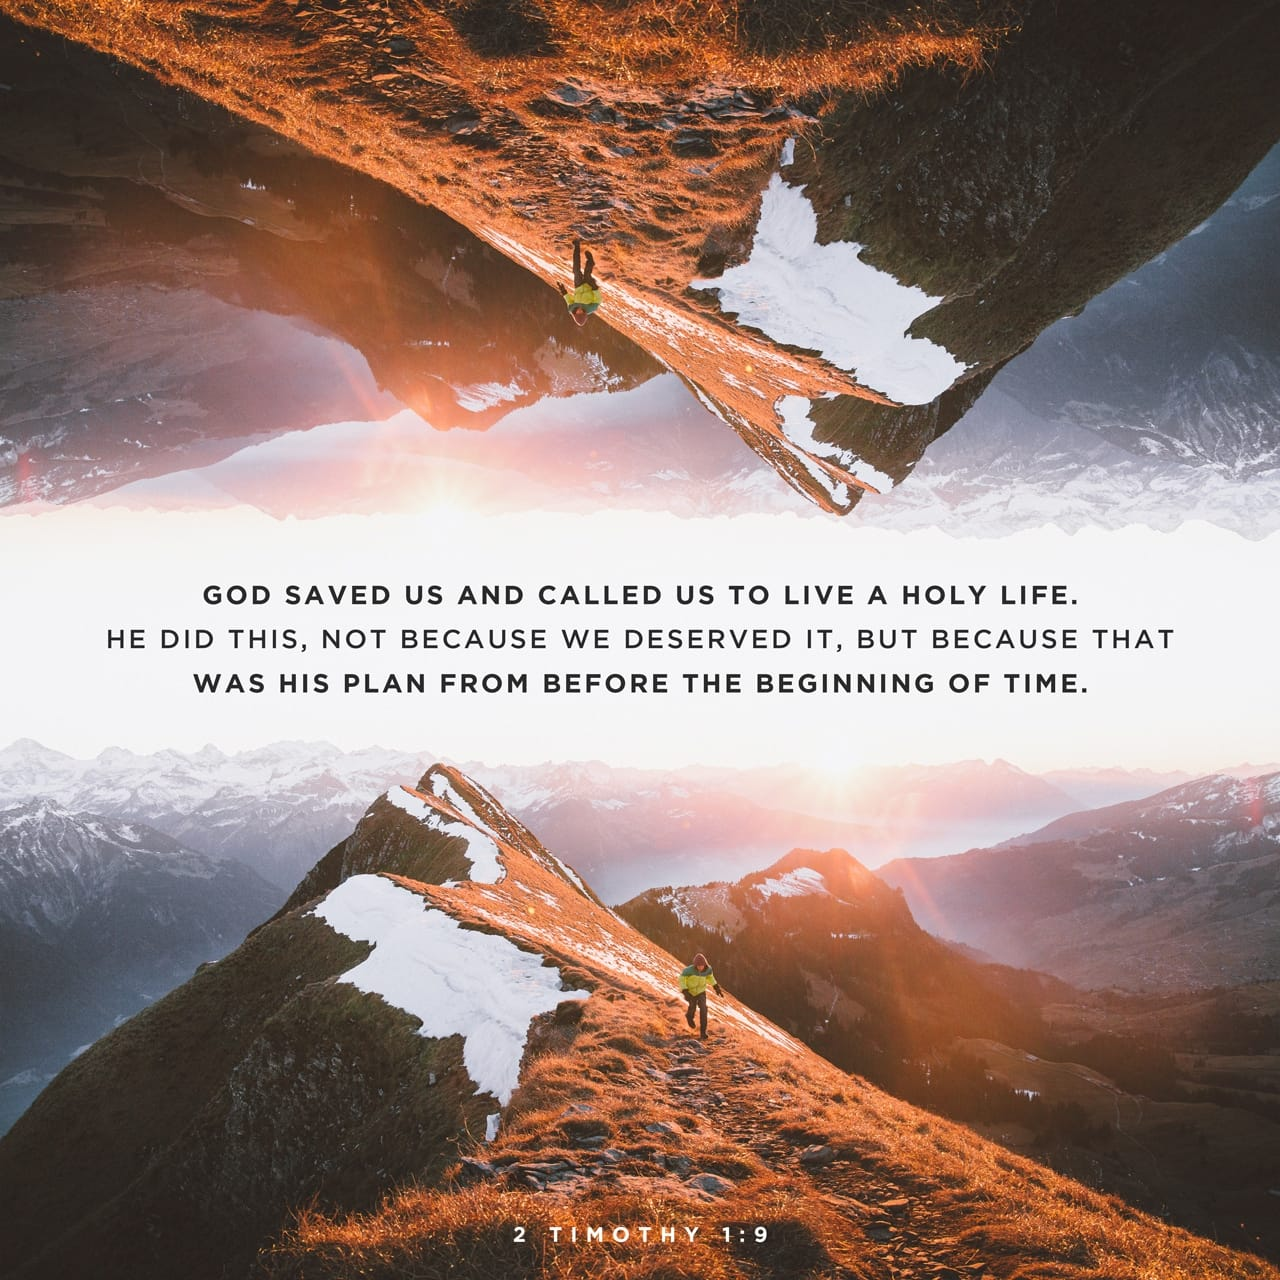 2 Timothy 1:9 Who hath saved us, and called us with an holy calling, not according to our works, but according to his own purpose and grace, which was given us in Christ Jesus before the world began | King James Version (KJV)